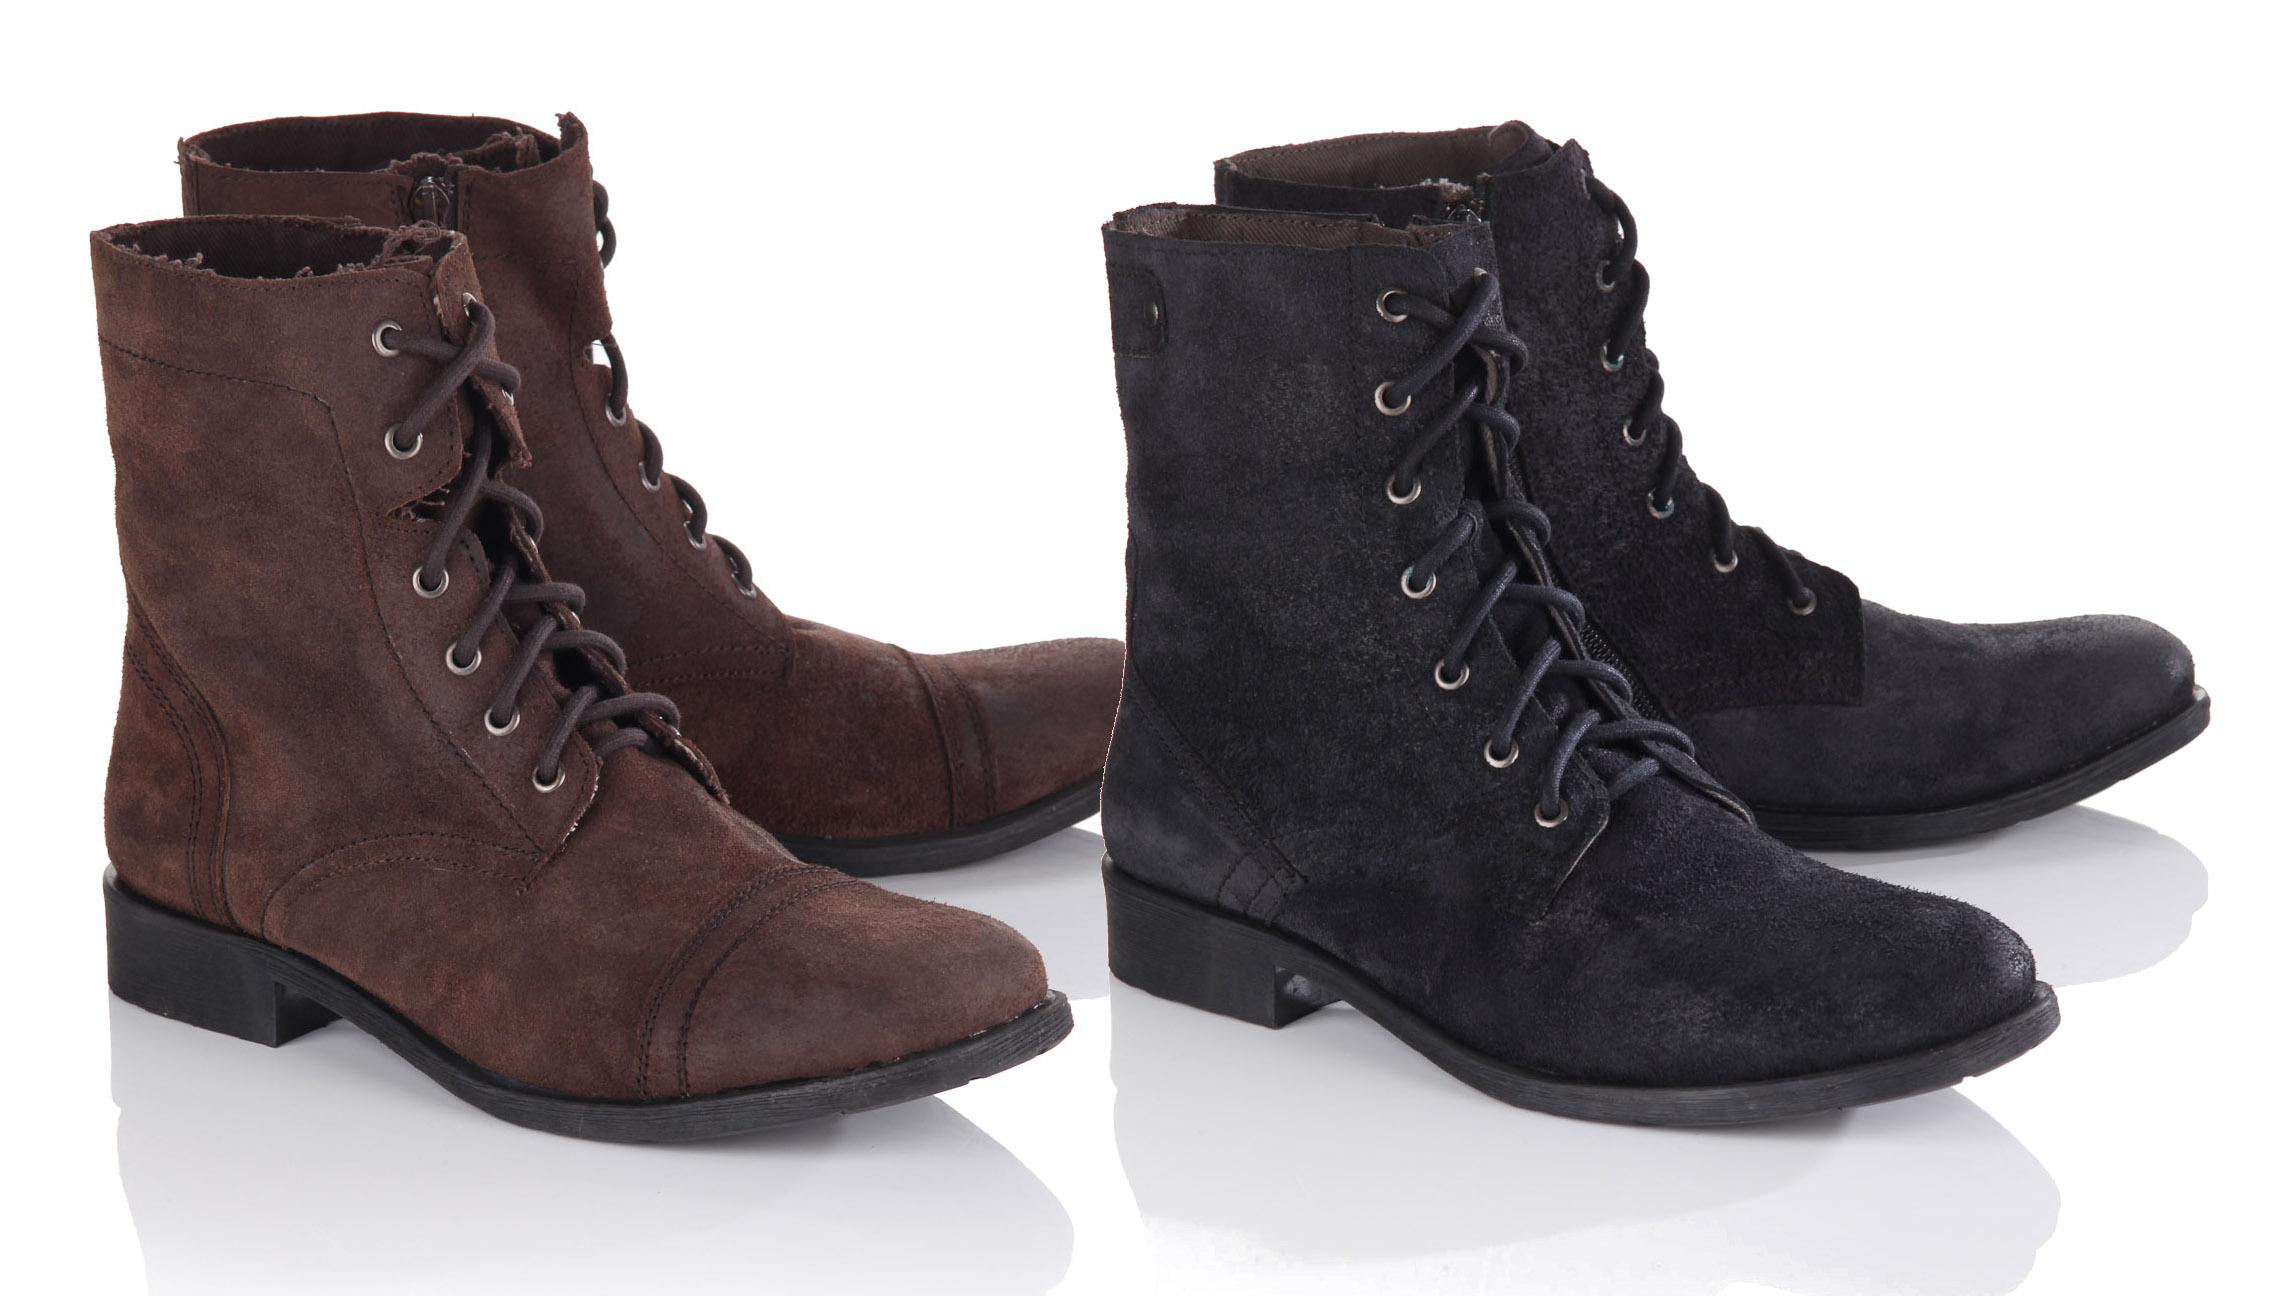 Blue-Inc-Mens-Frank-Wright-Lace-Up-Boot-Military-Style-Single-Choice-Black-Brown